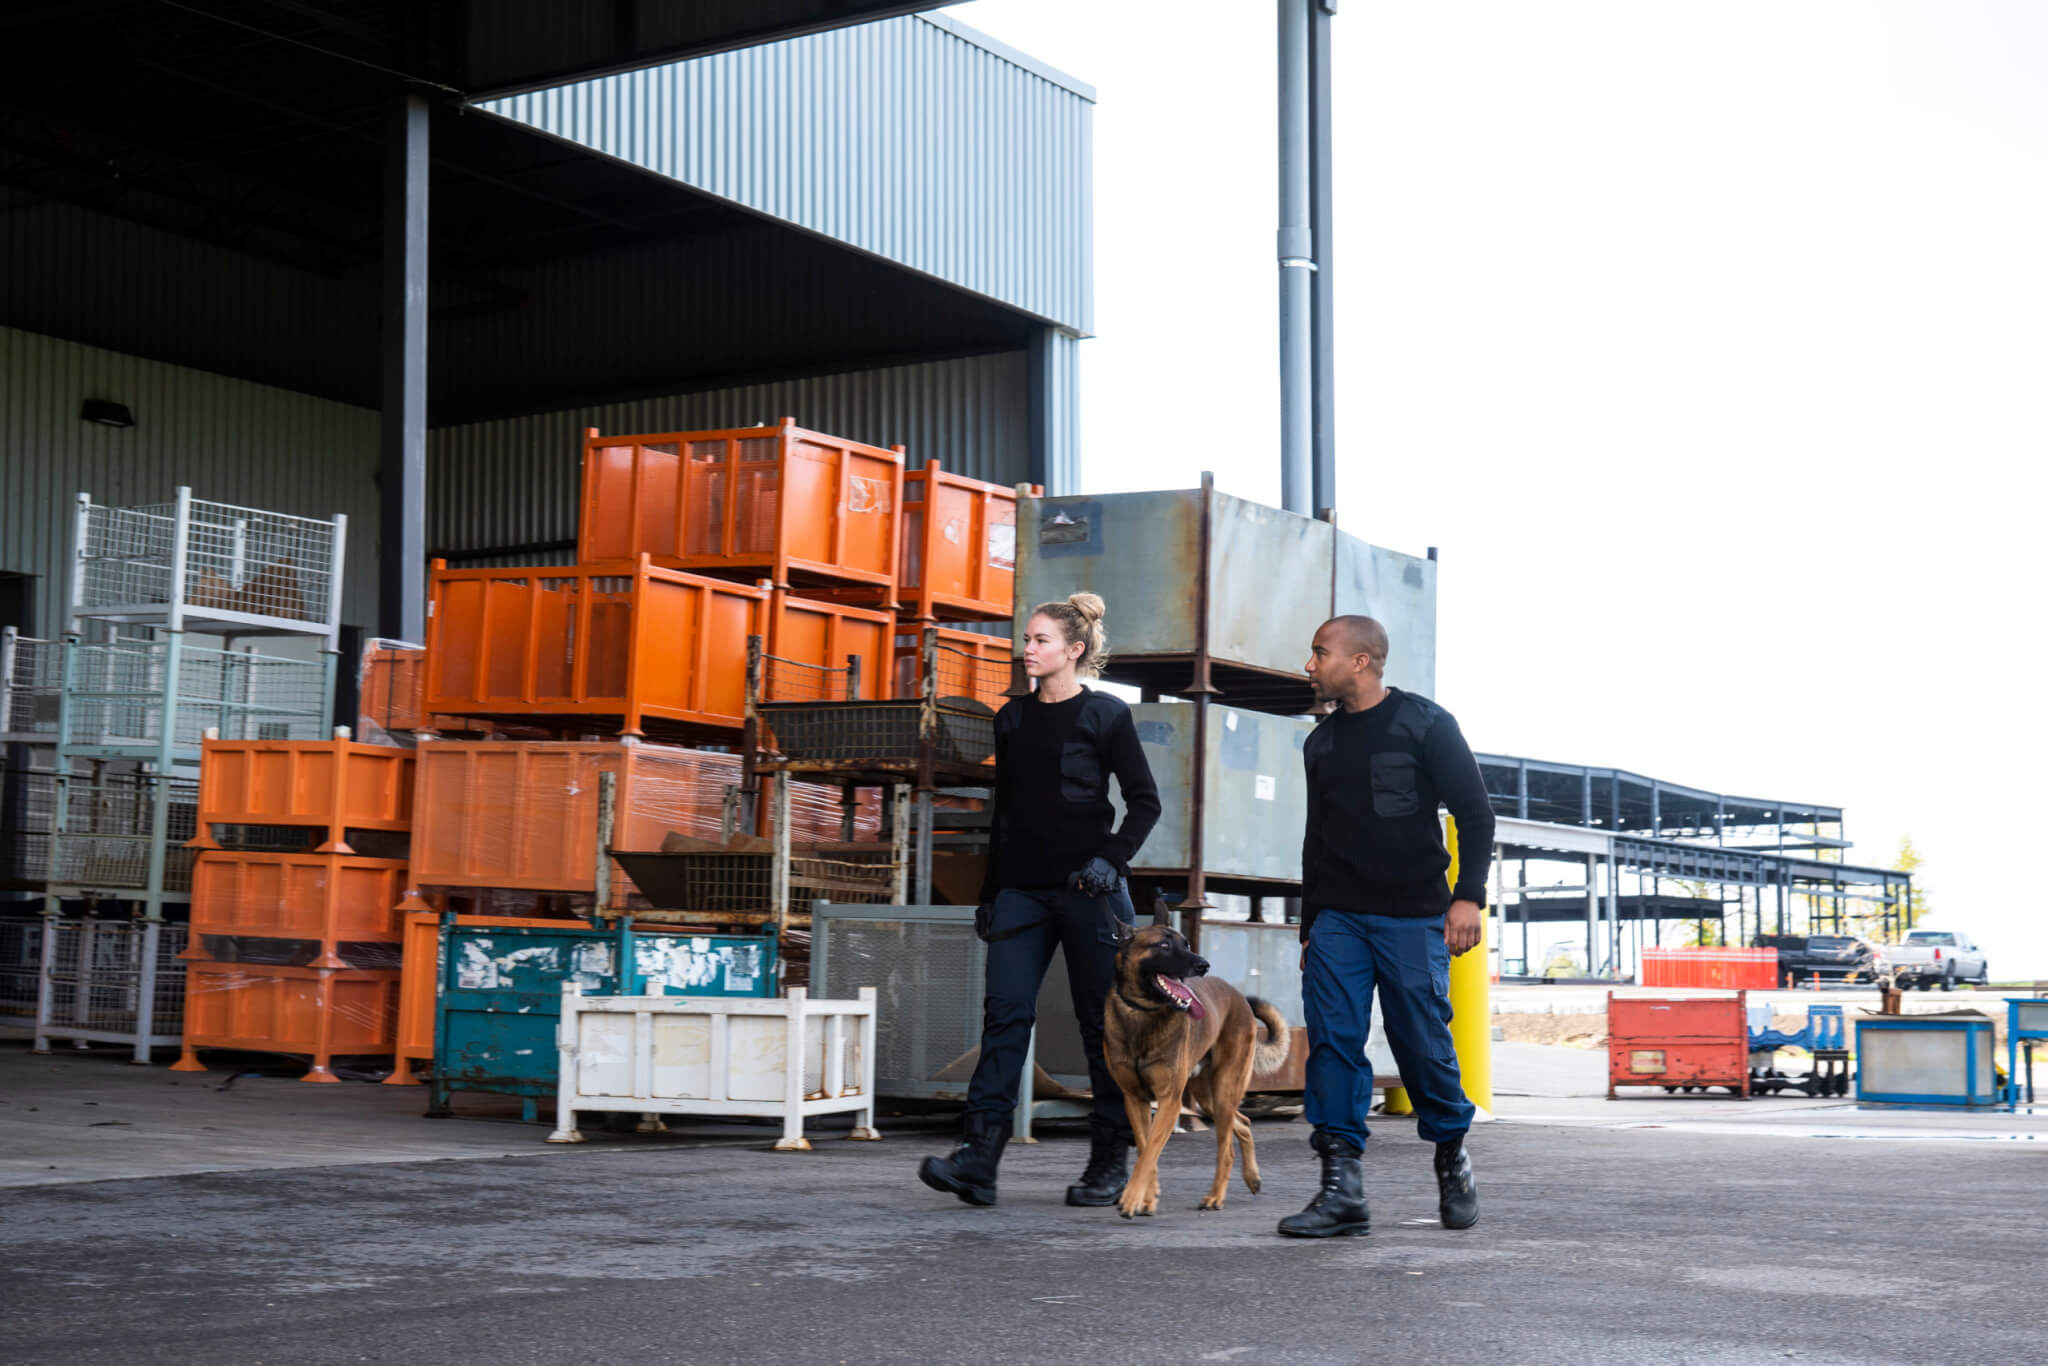 Male and female K-9 security professionals with a Belgian Malinois patrolling outside an industrial building.